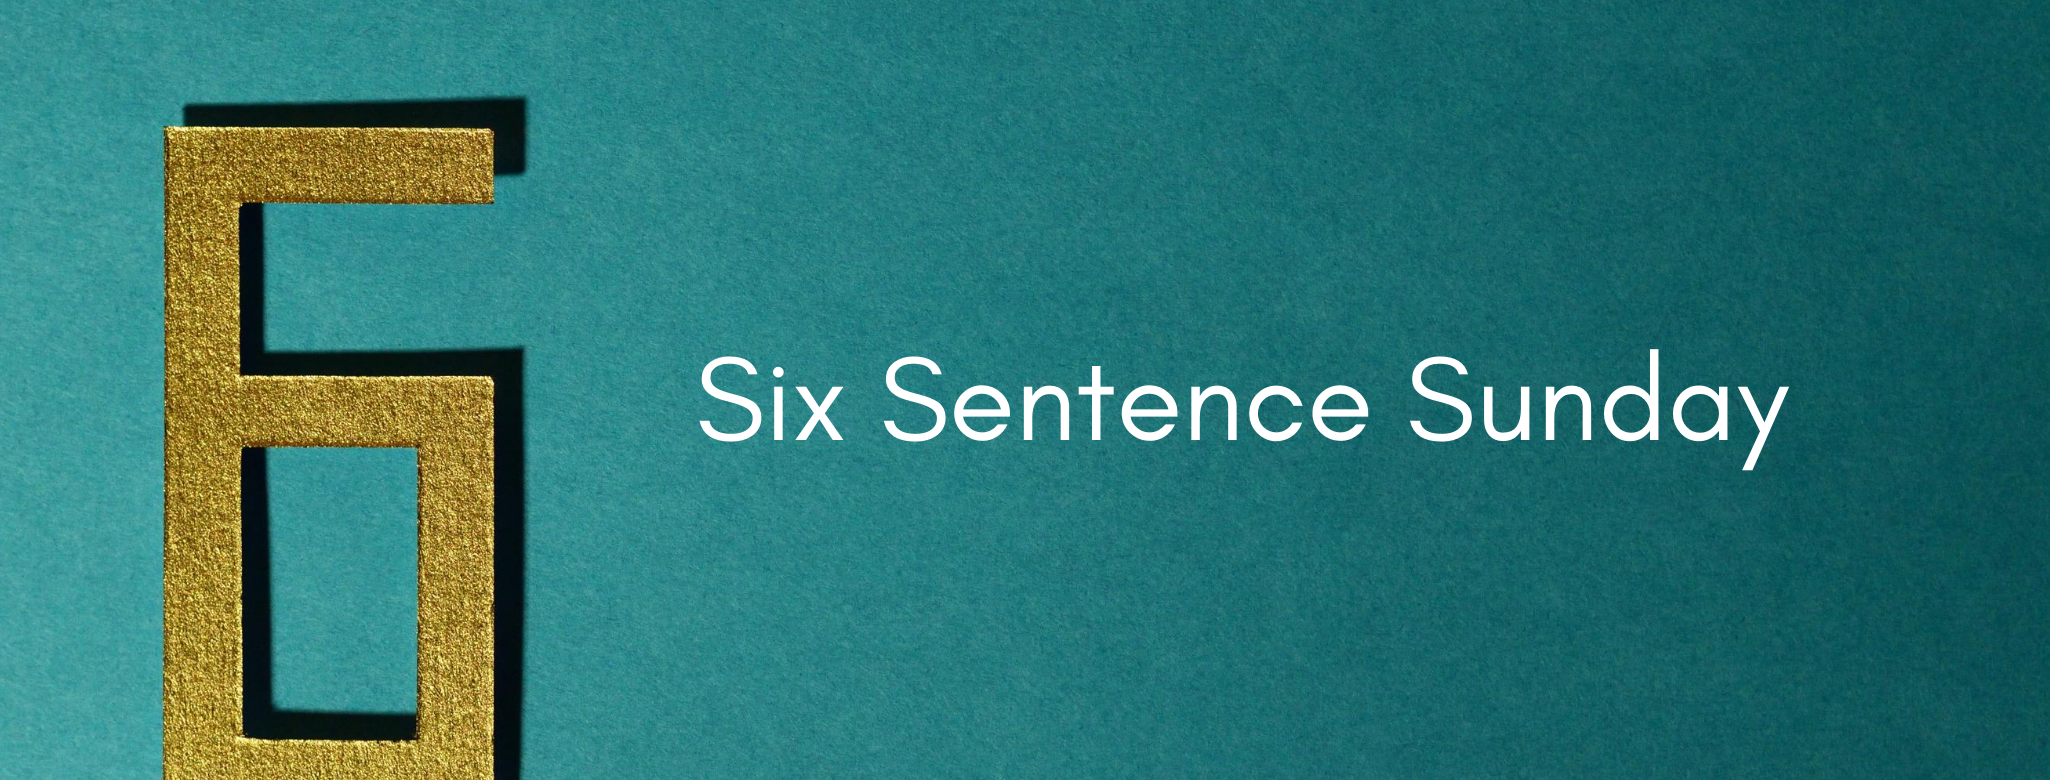 Six Sentence Sunday